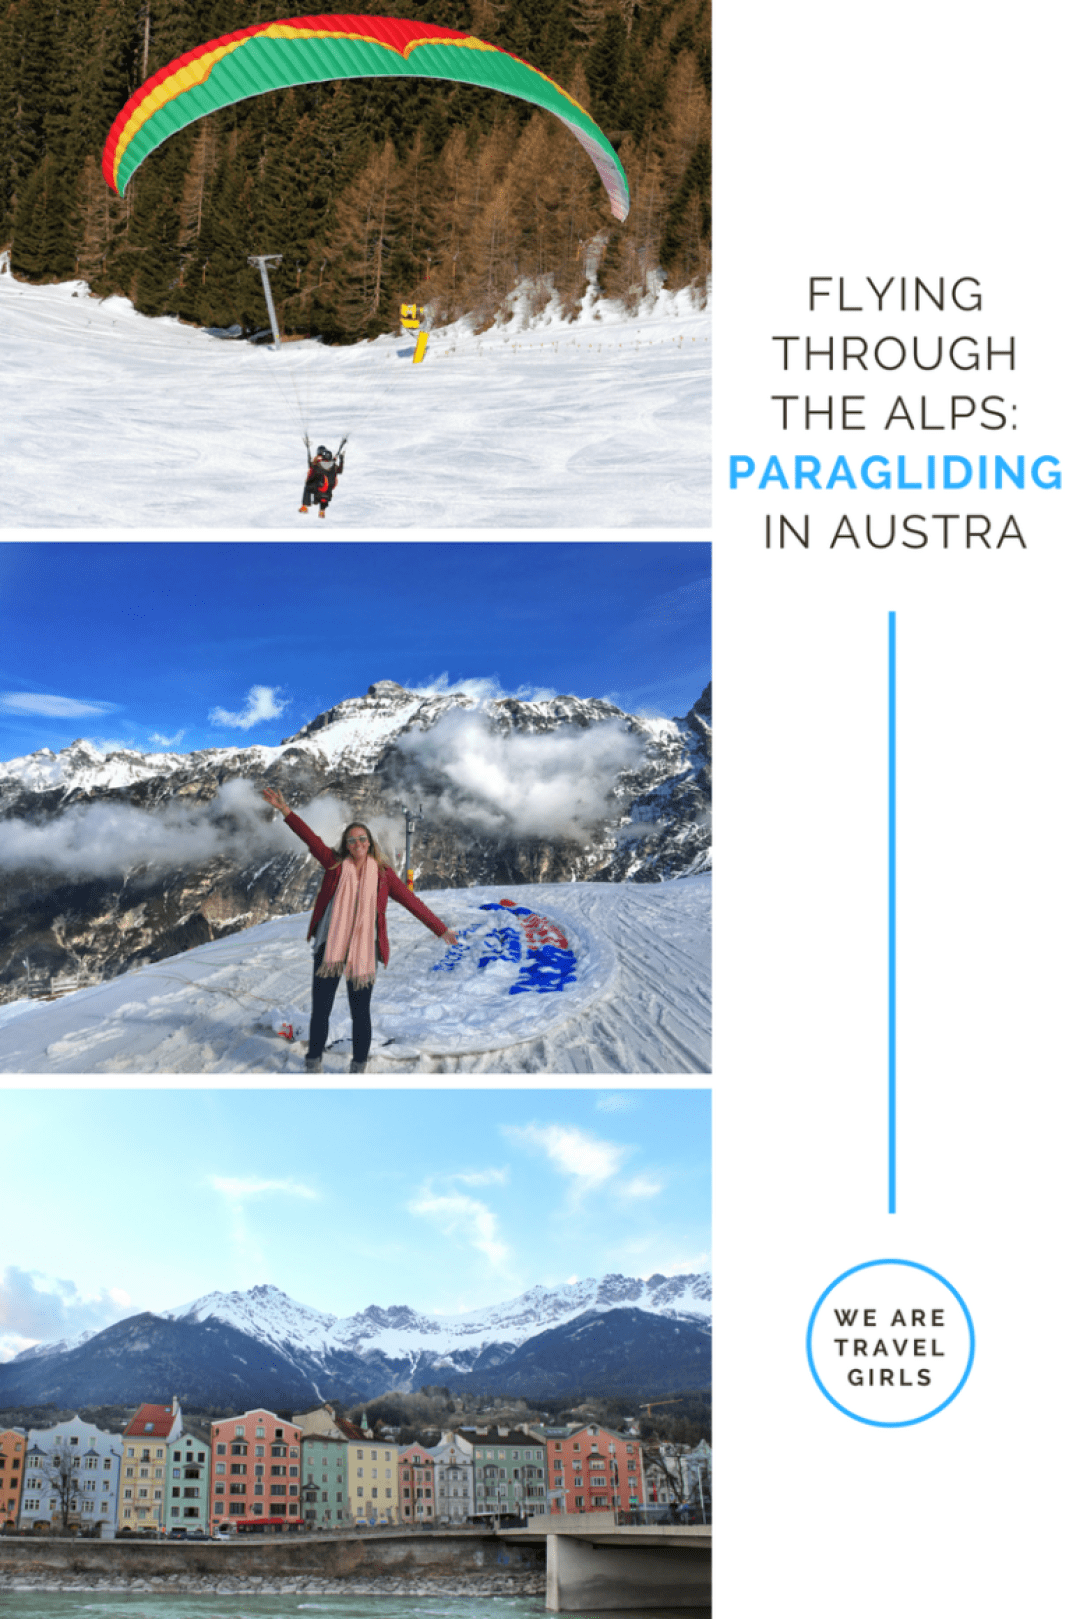 FLYING THROUGH THE ALPS- PARAGLIDING IN AUSTRA GRAPHC 2